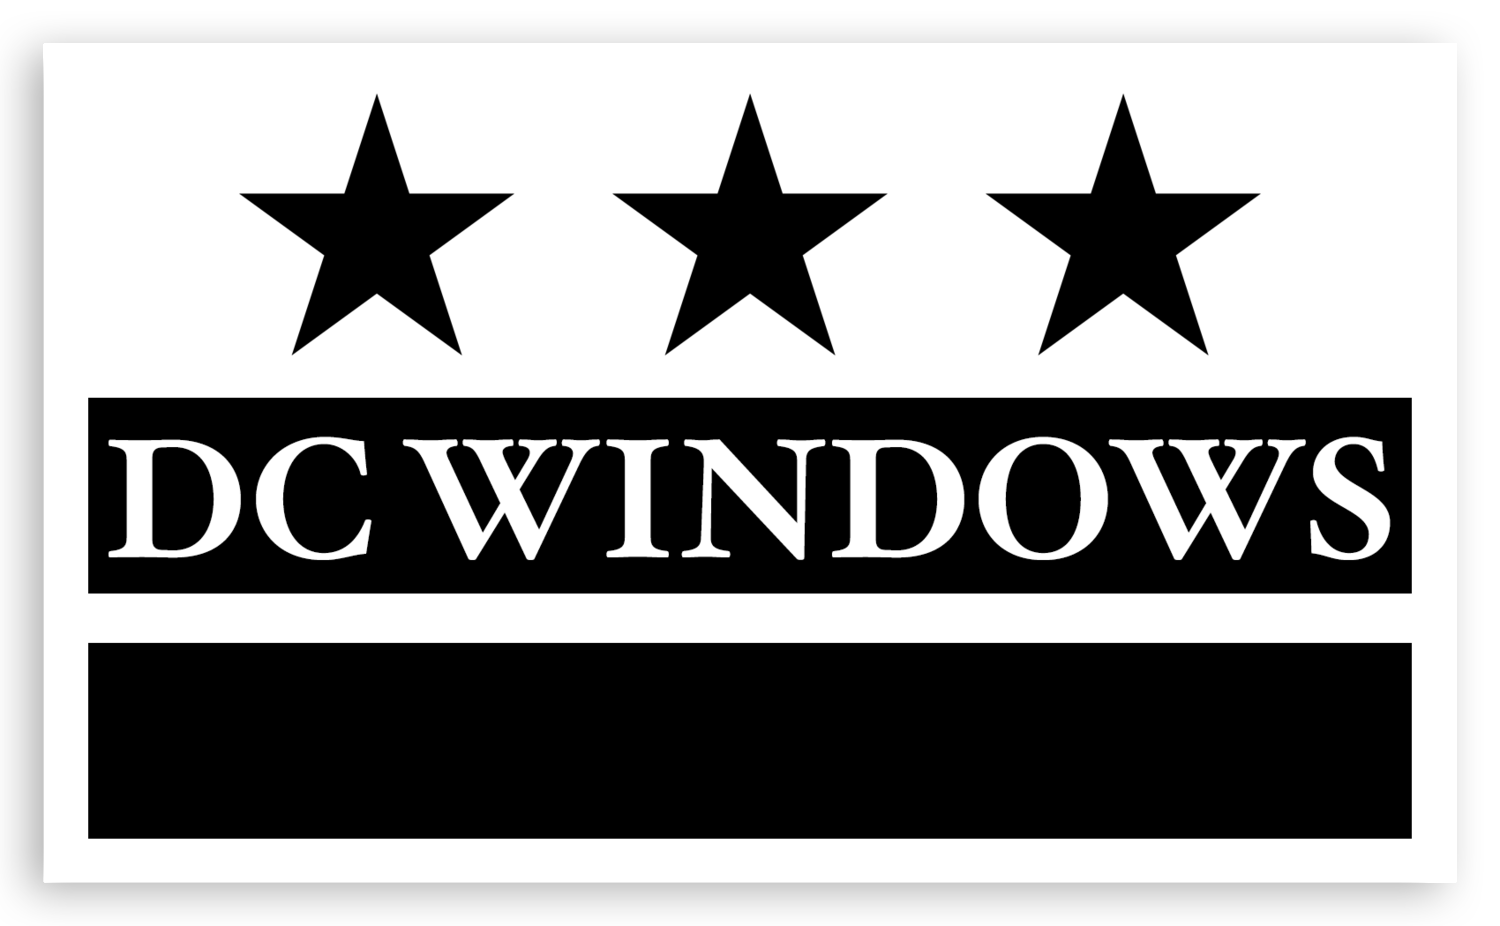 DC WINDOWS